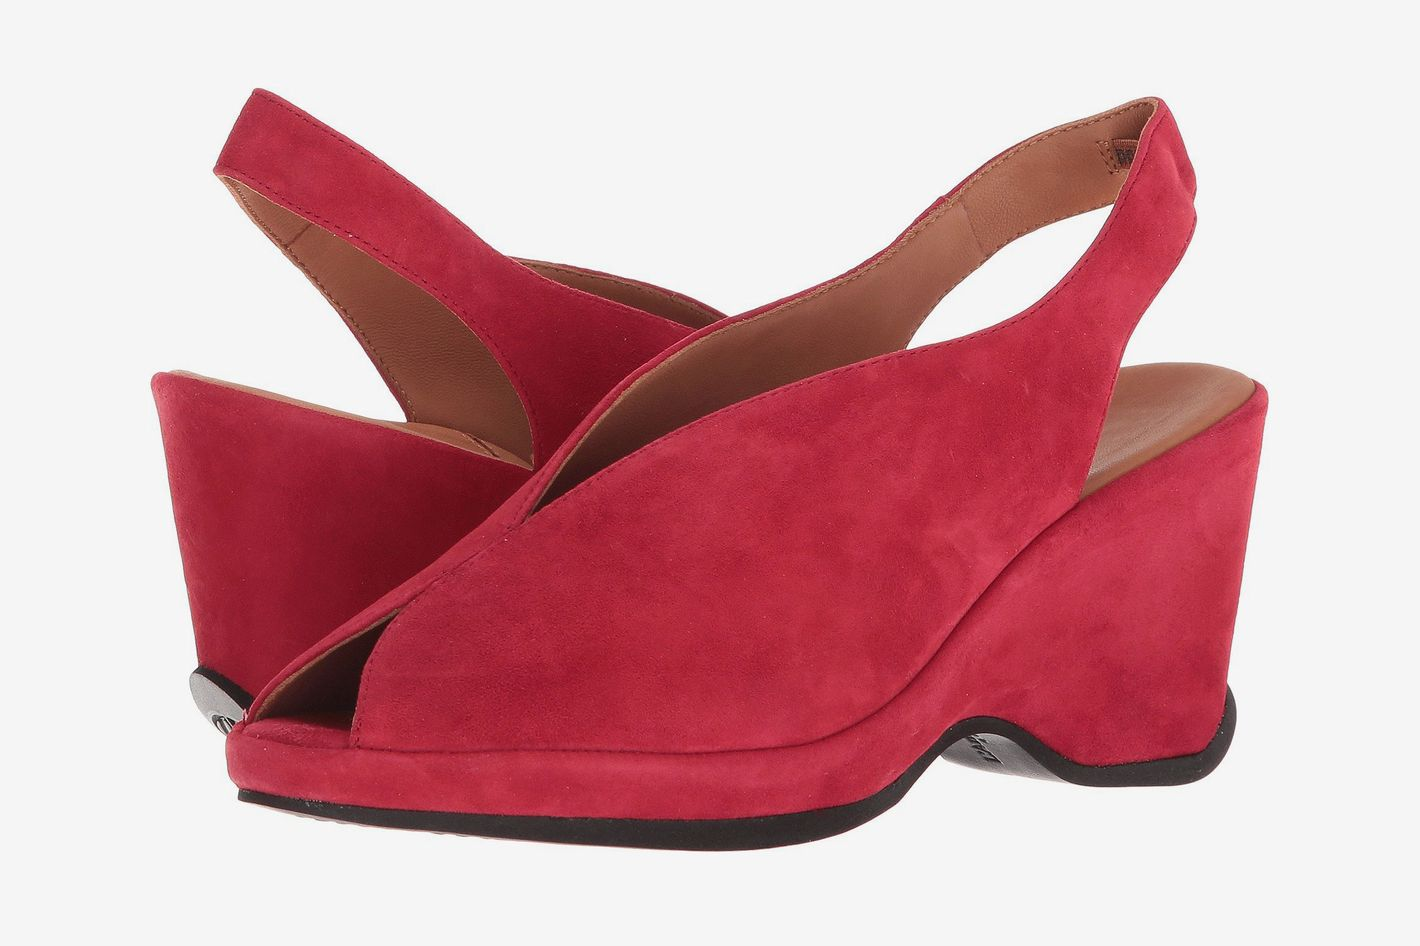 11 Best Orthopedic Shoes For Women 2018